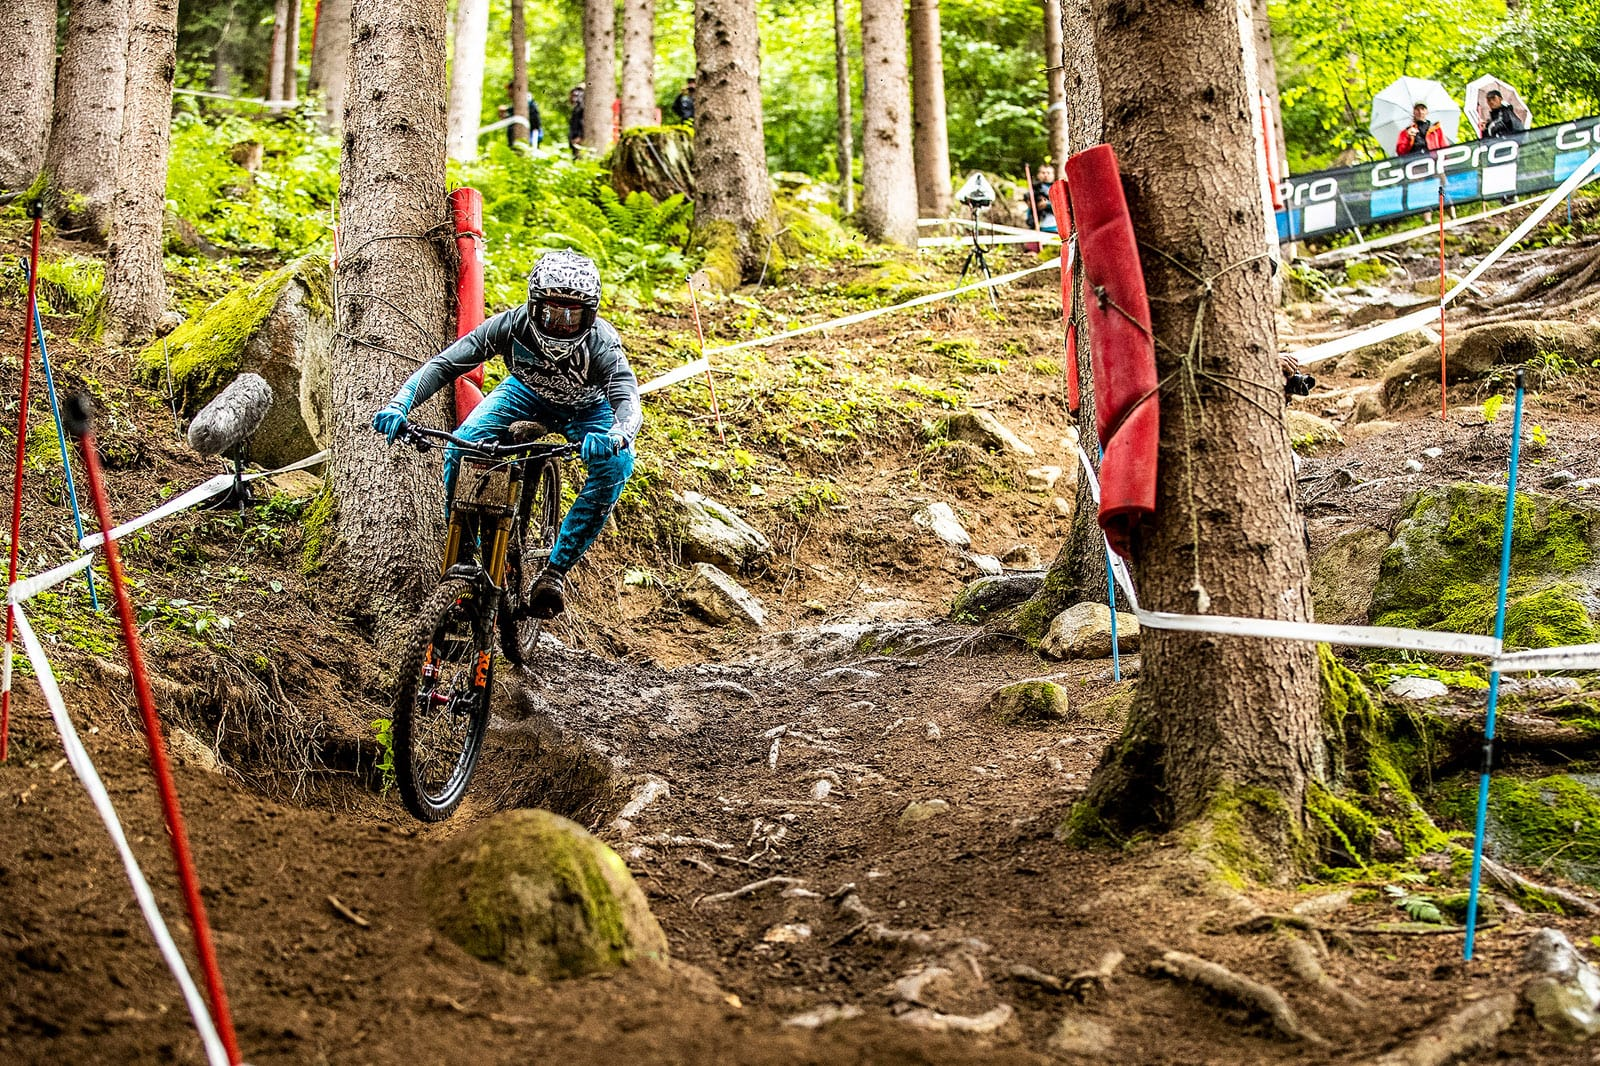 Santa Cruz Bicycles - The Syndicate at Val di Sole World Cup DH - Luca Shaw at Qualifiers